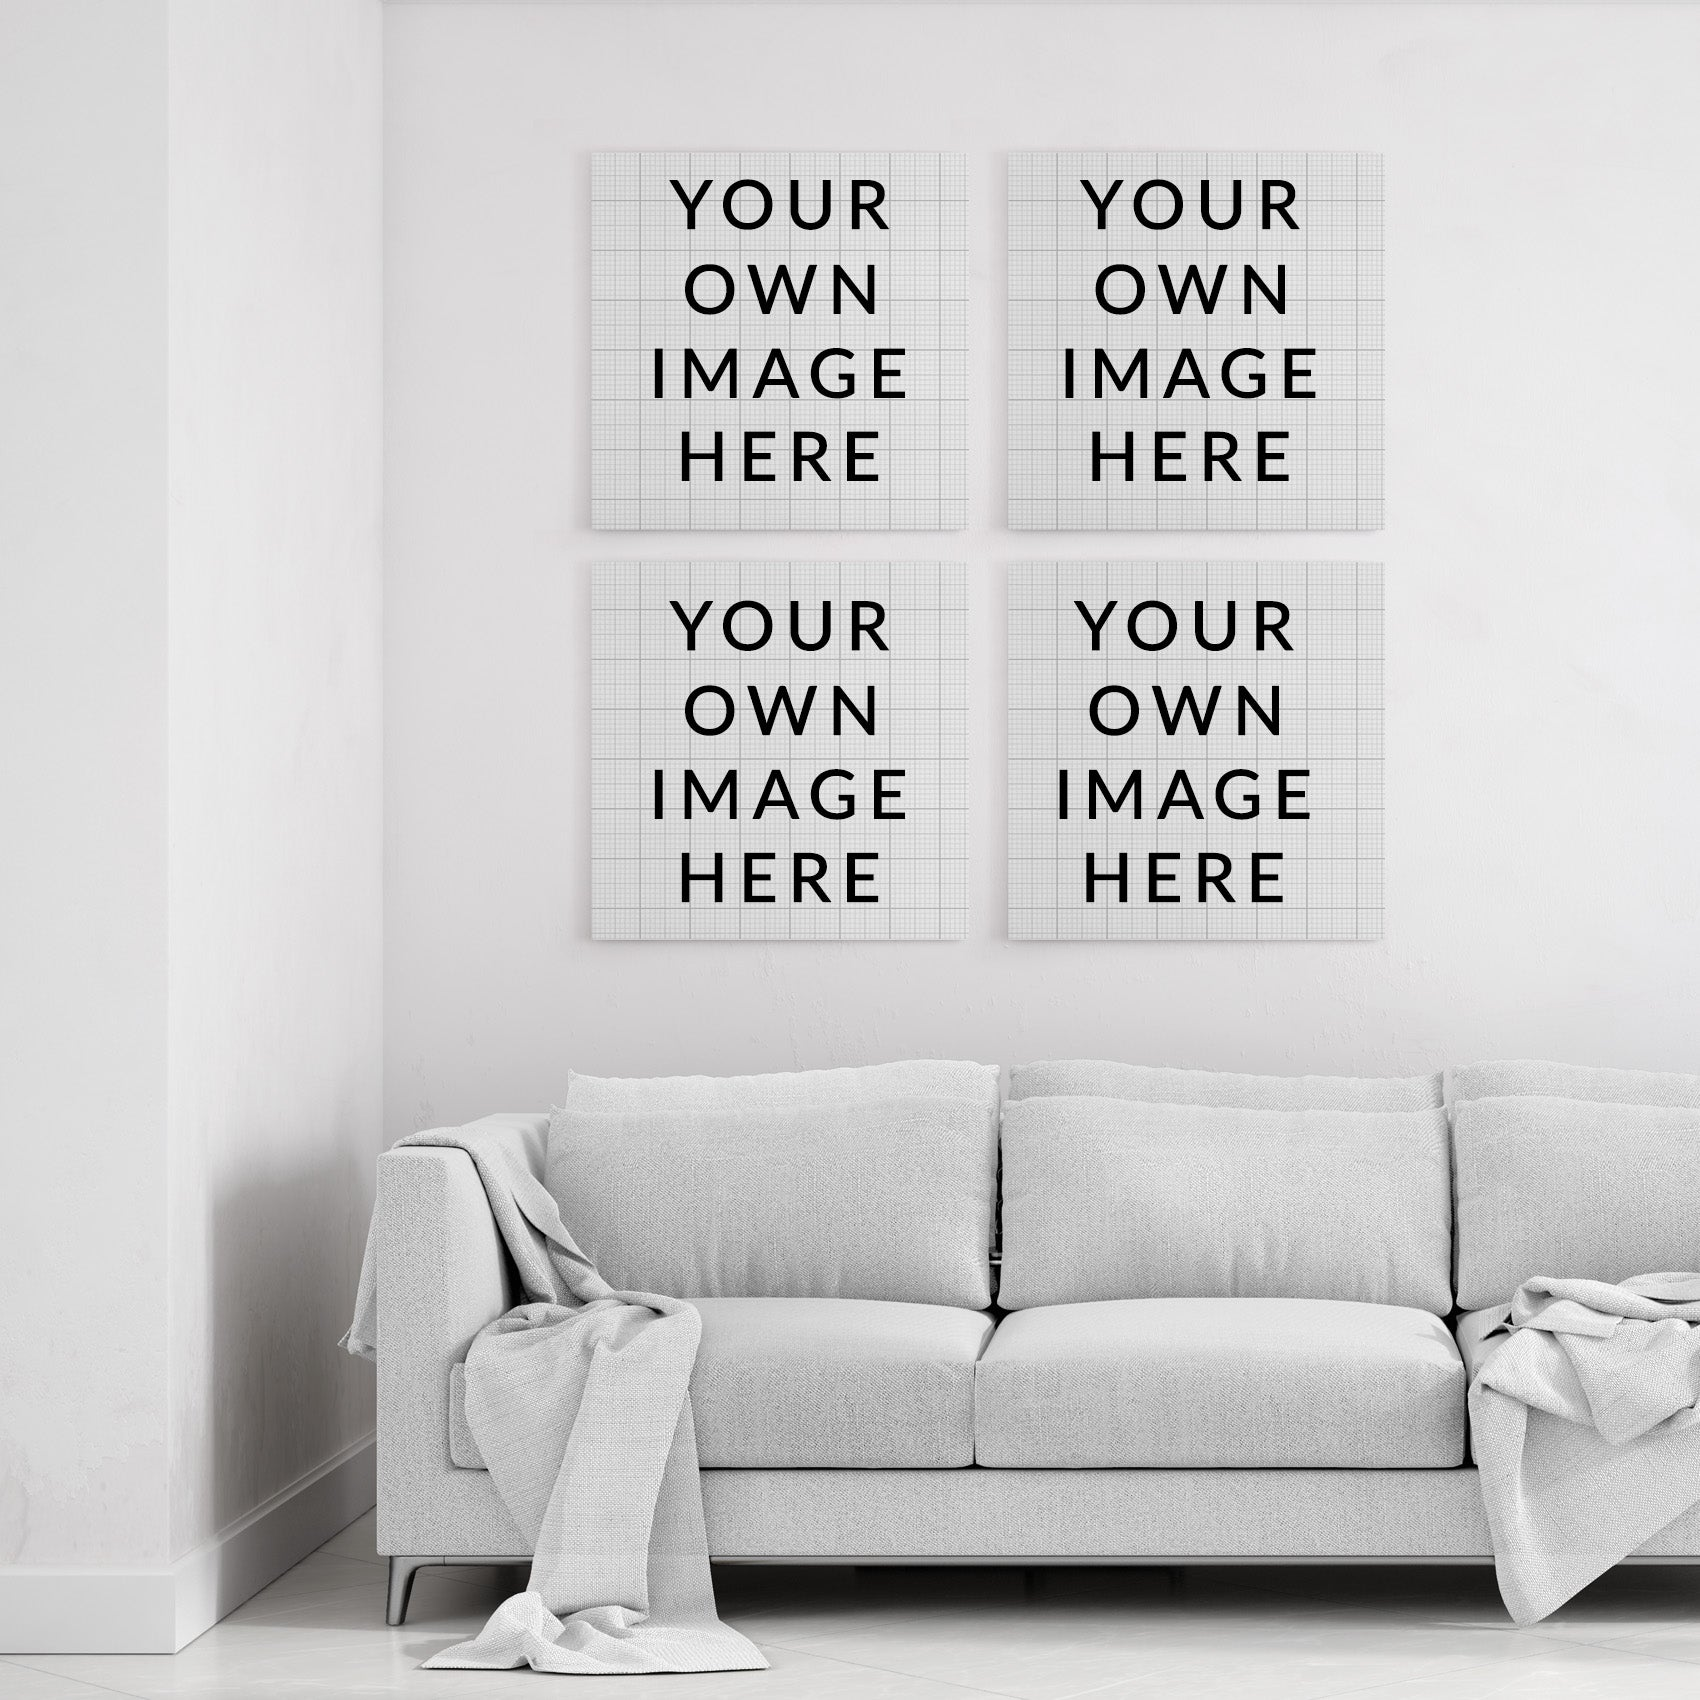 Your own images - Custom Canvas Art (4 square canvases)